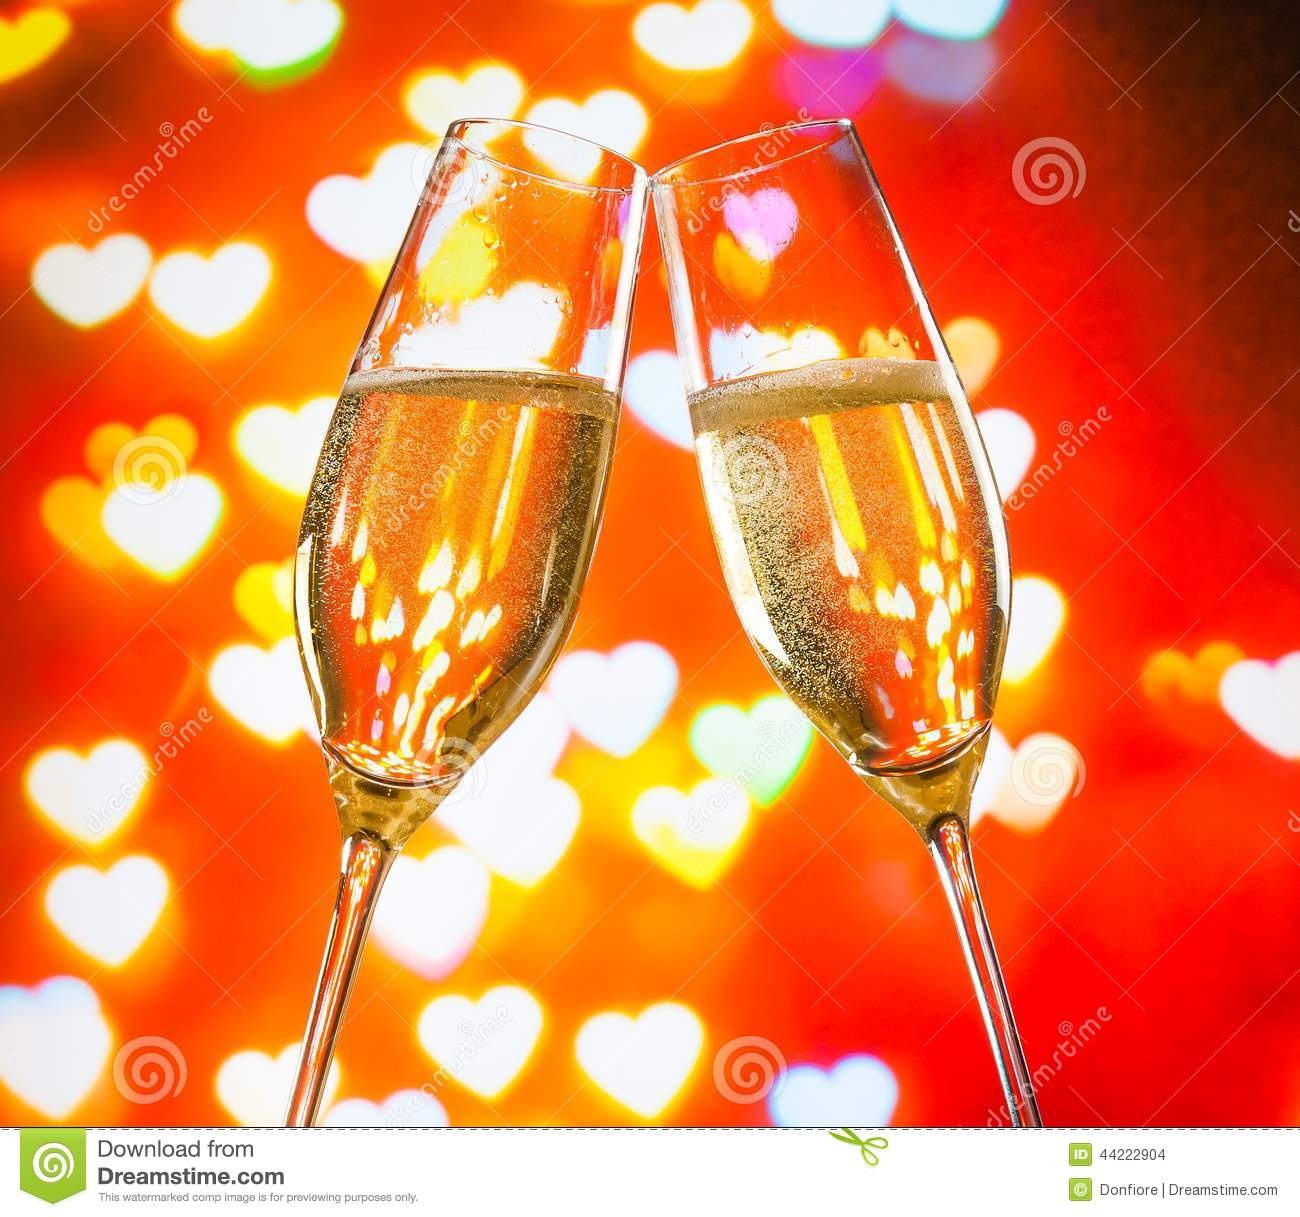 A Pair Of Champagne Flutes With Golden Bubbles On Hearts